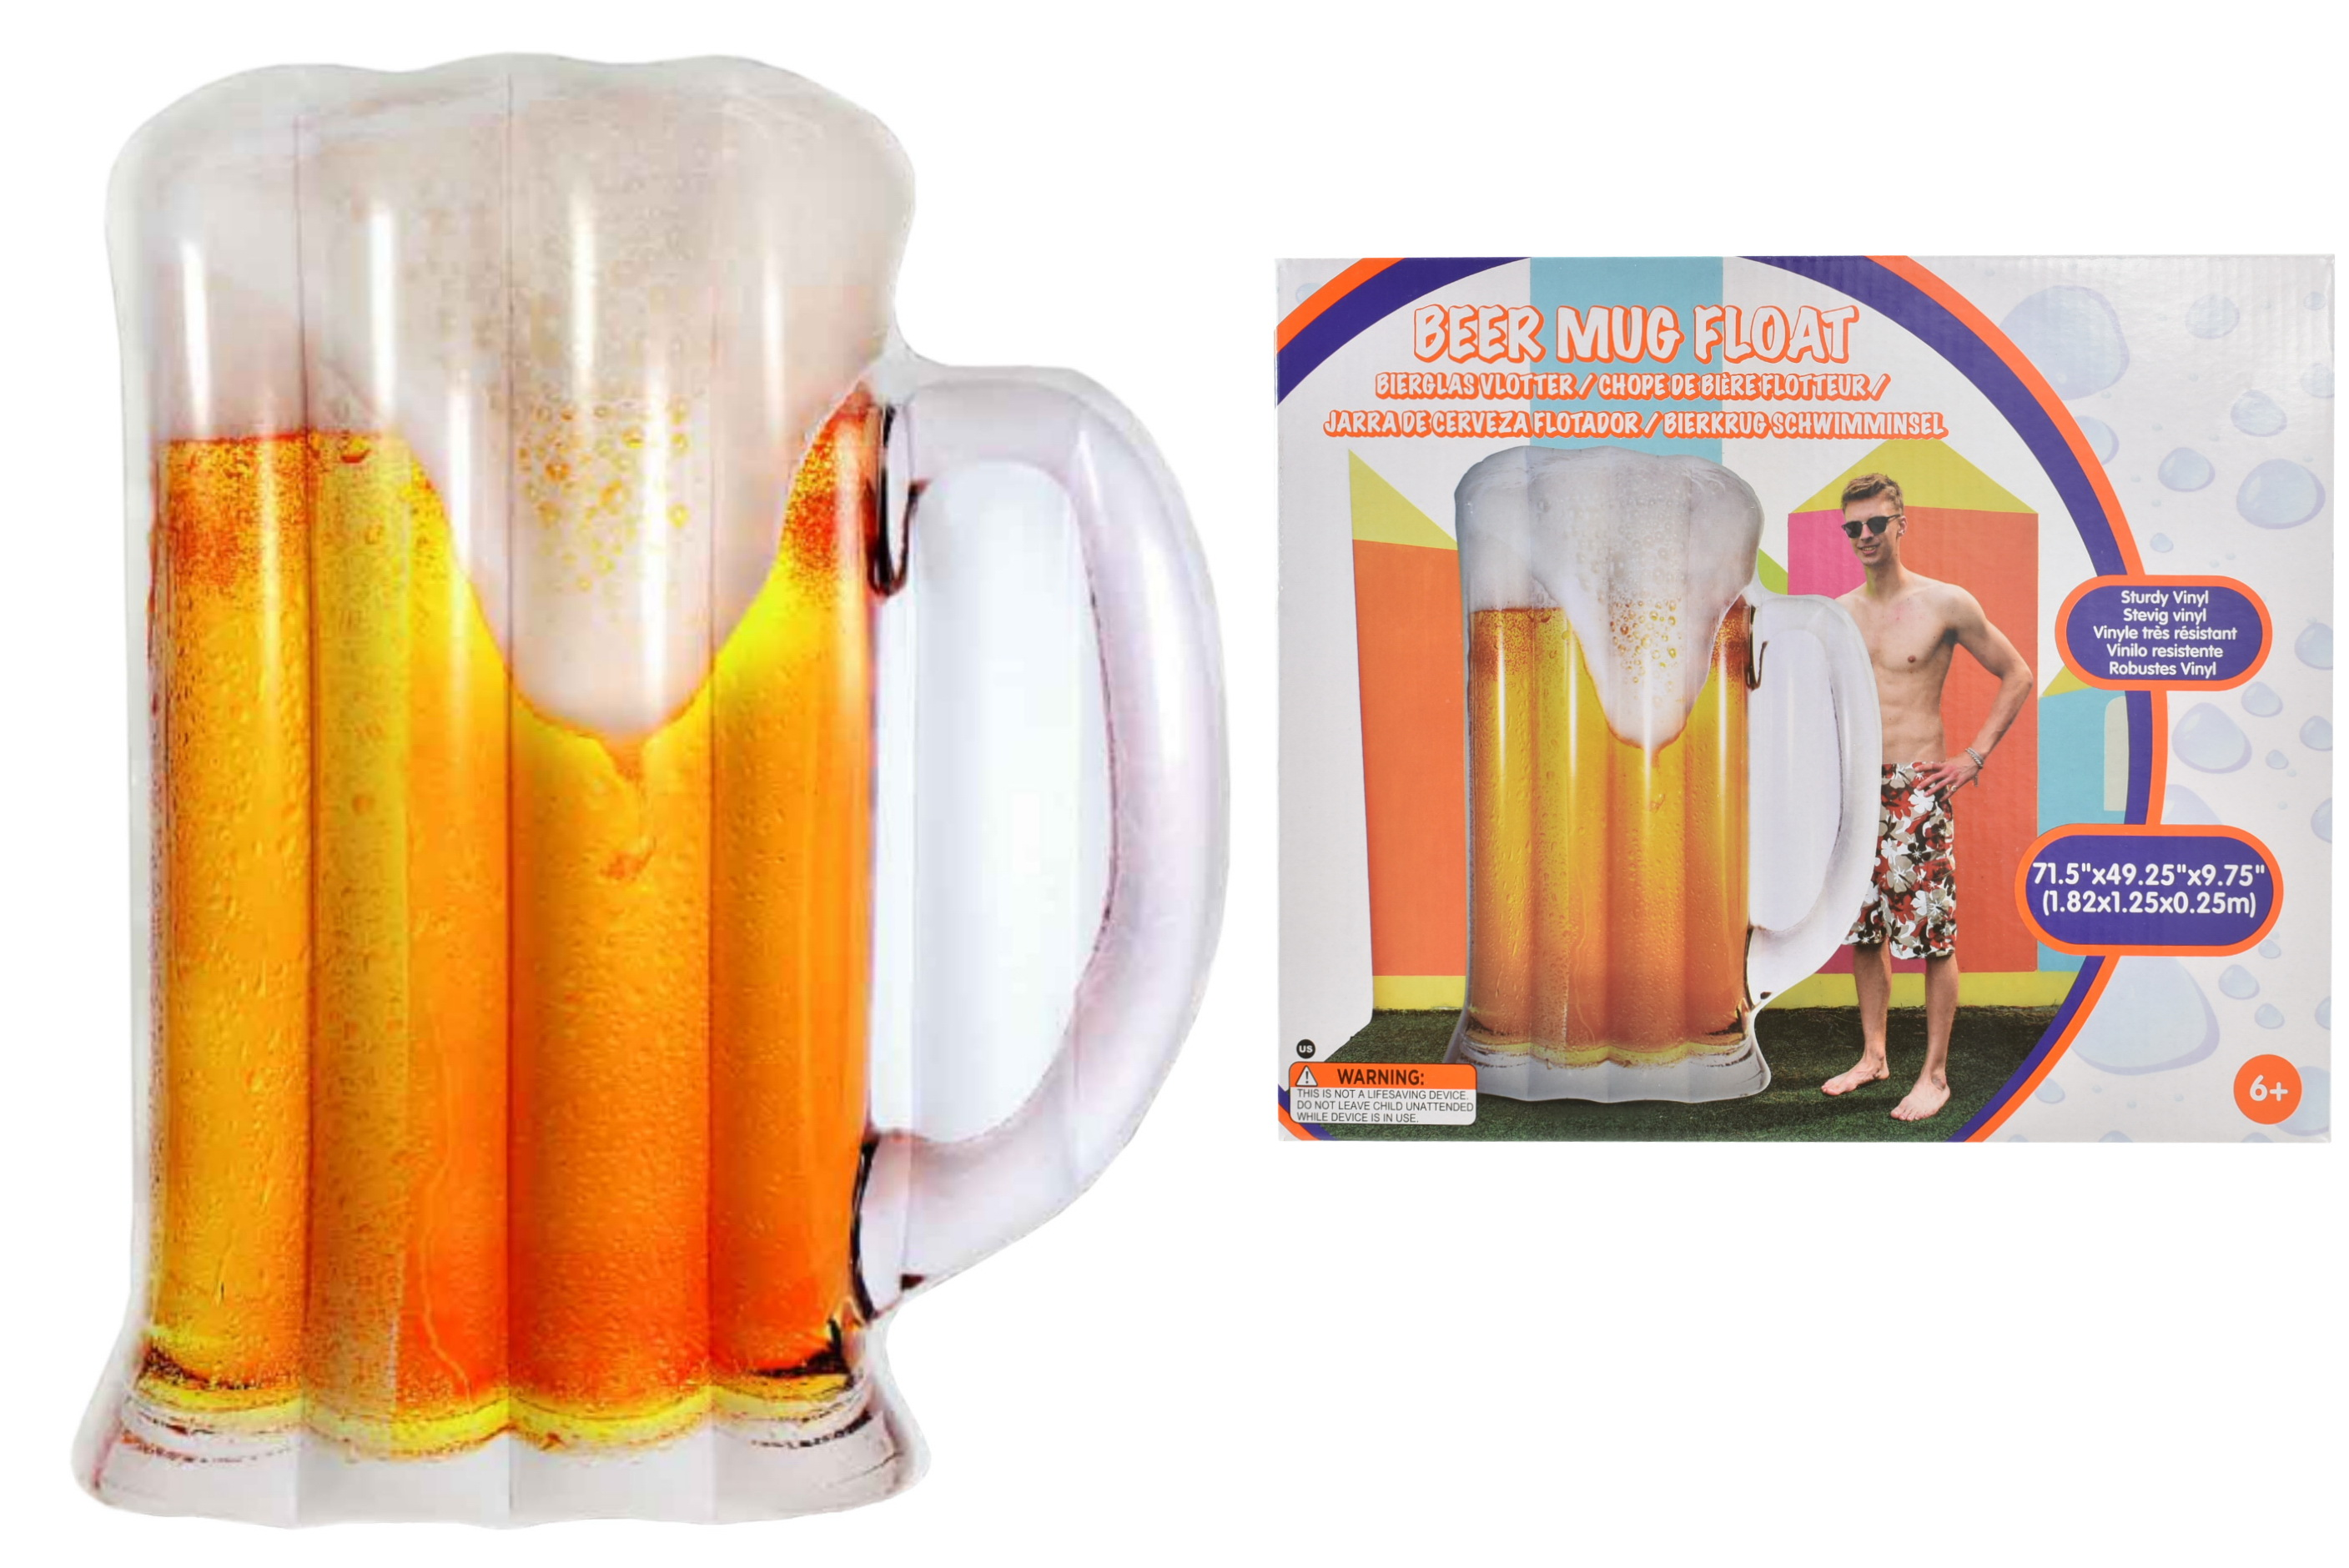 "Beer Mug Float 75"" x 57"""